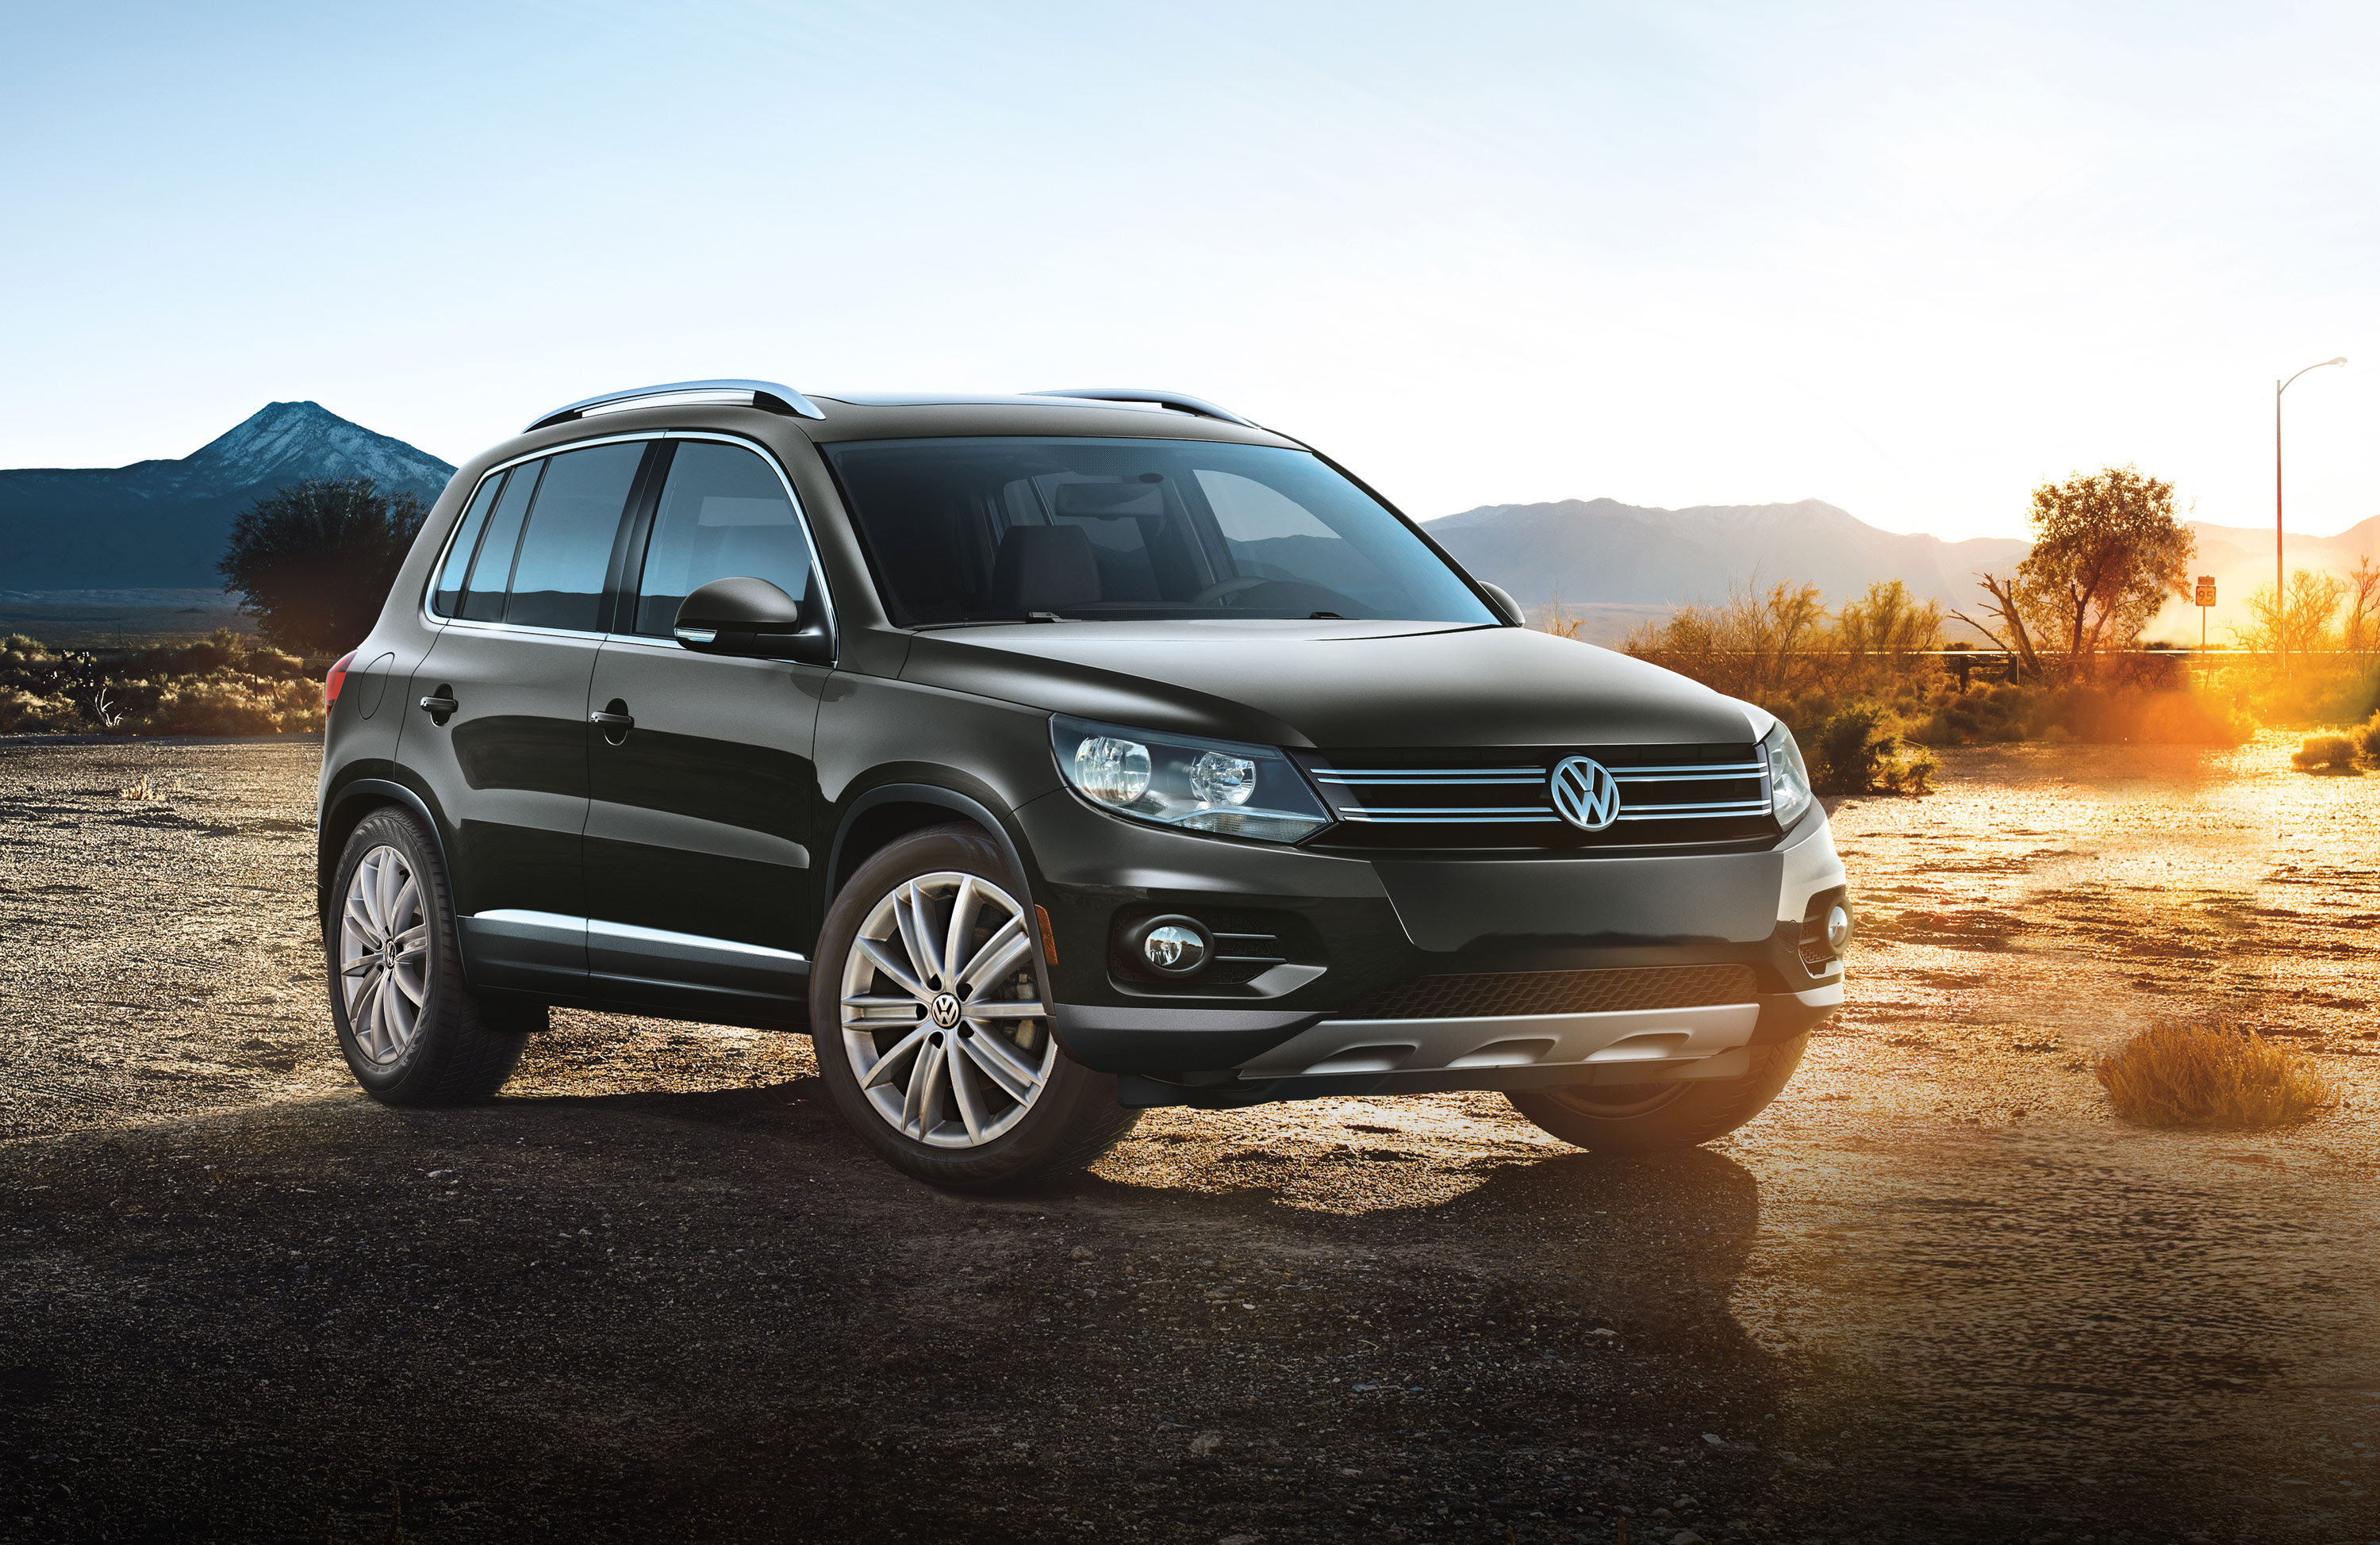 volkswagen tiguan desktop  HD Desktop Wallpapers  4k HD